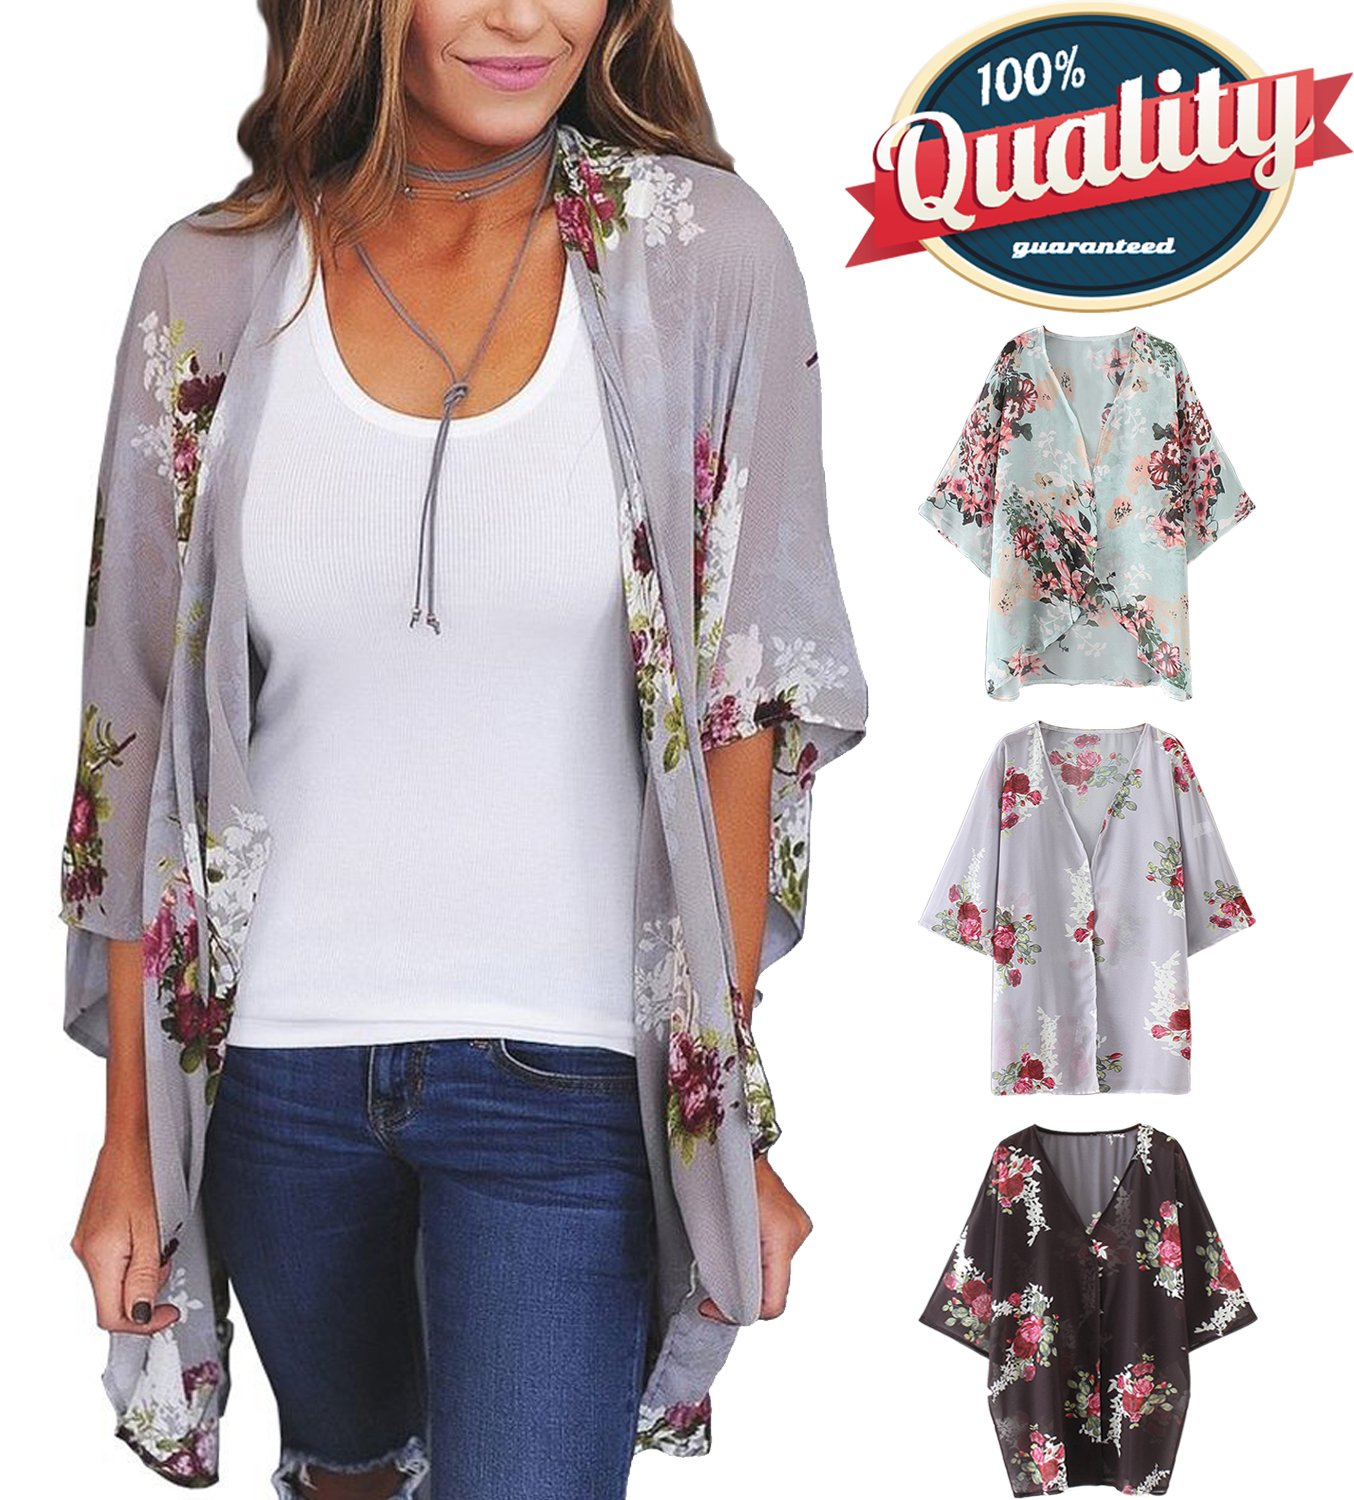 YnimioAOX Women's 3/4 Sleeve Floral Kimono Casual Cardigan Sheer Loose Shawl Chiffon Beach Cover up (B-Lavender Gray, M)